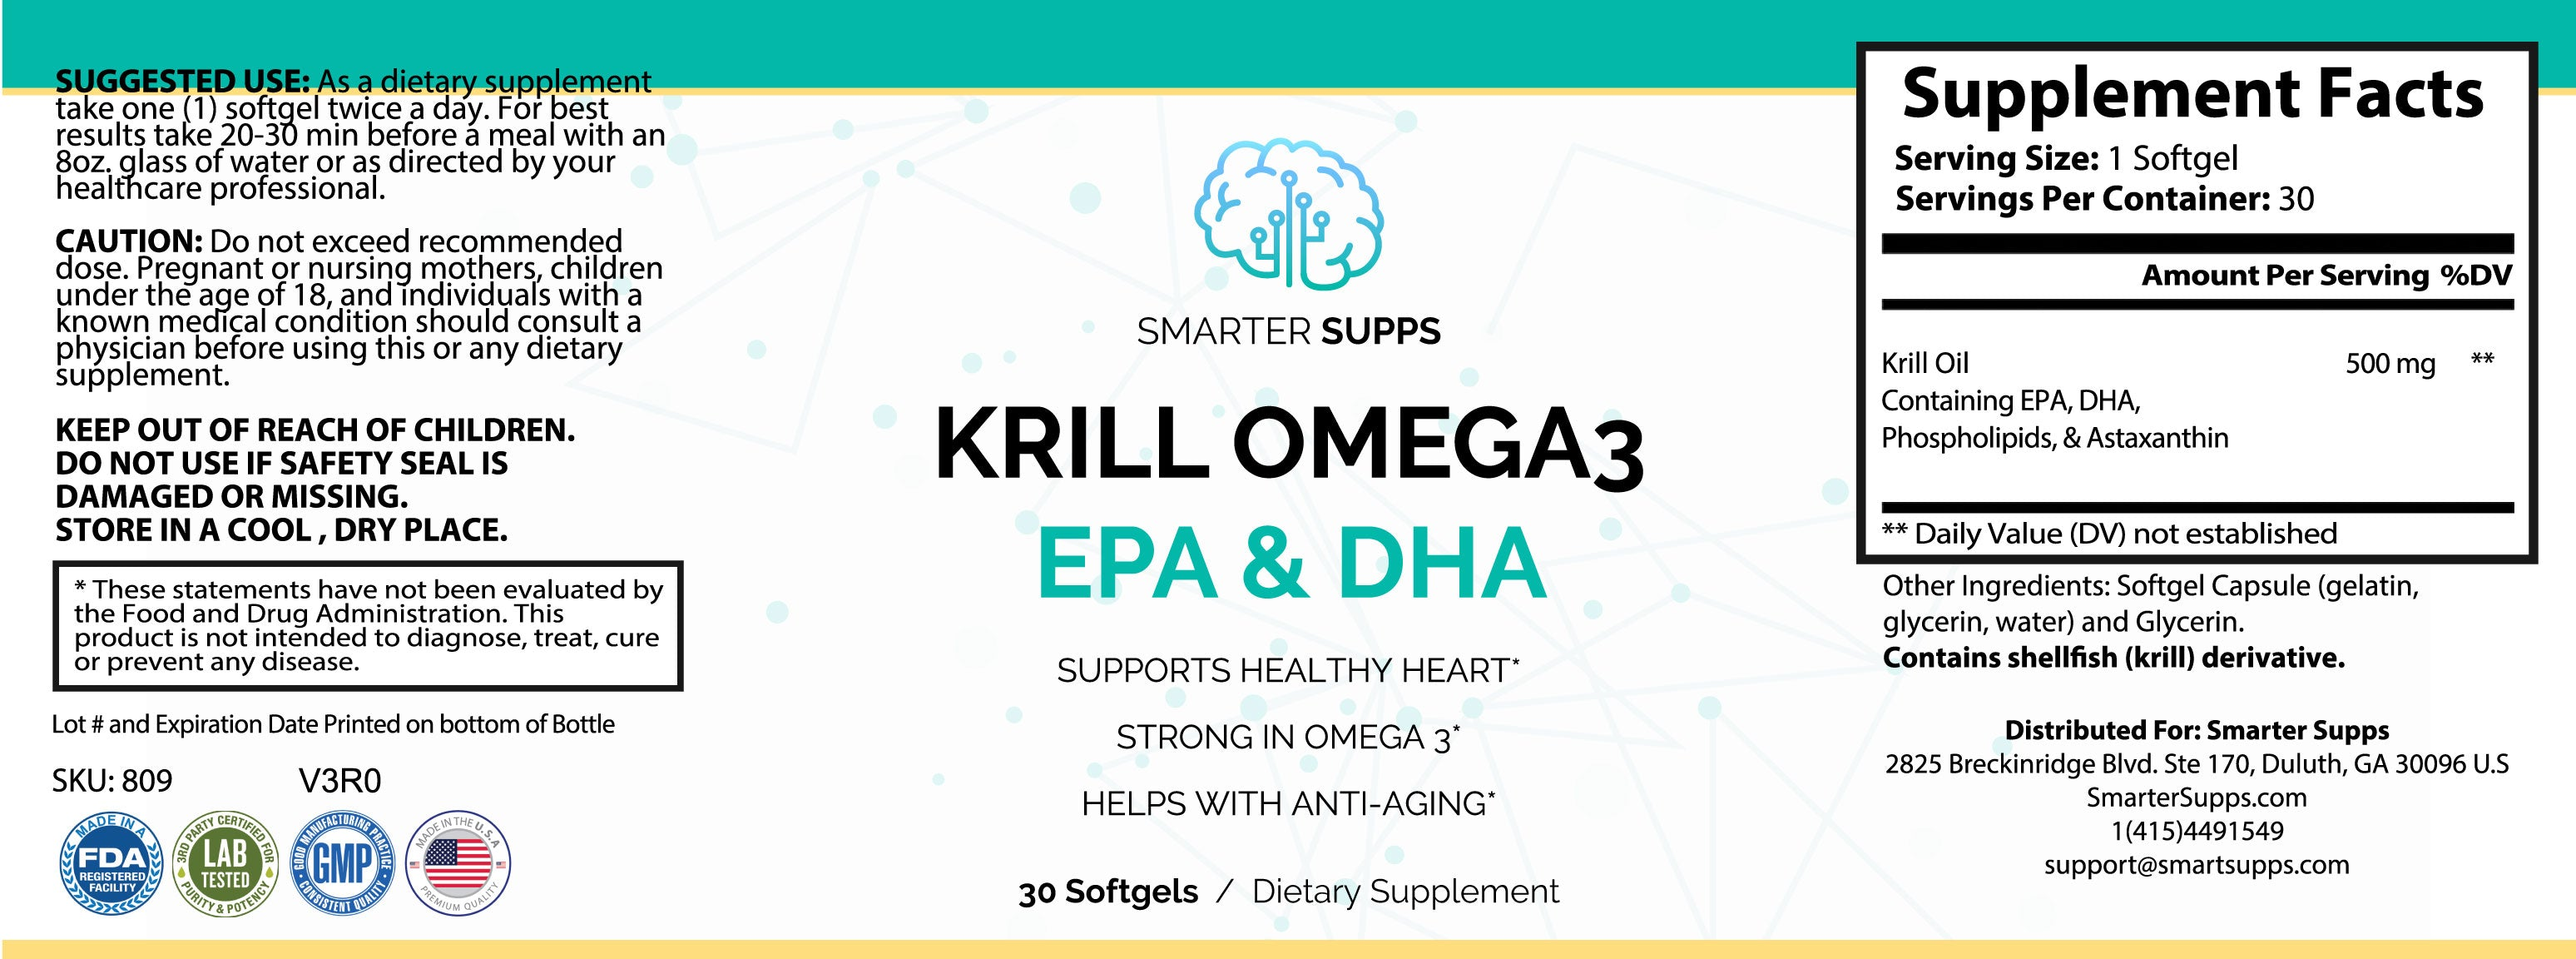 1 Bottle of Krill Omega 3 <br> EPA & DHA - FREE SHIPPING